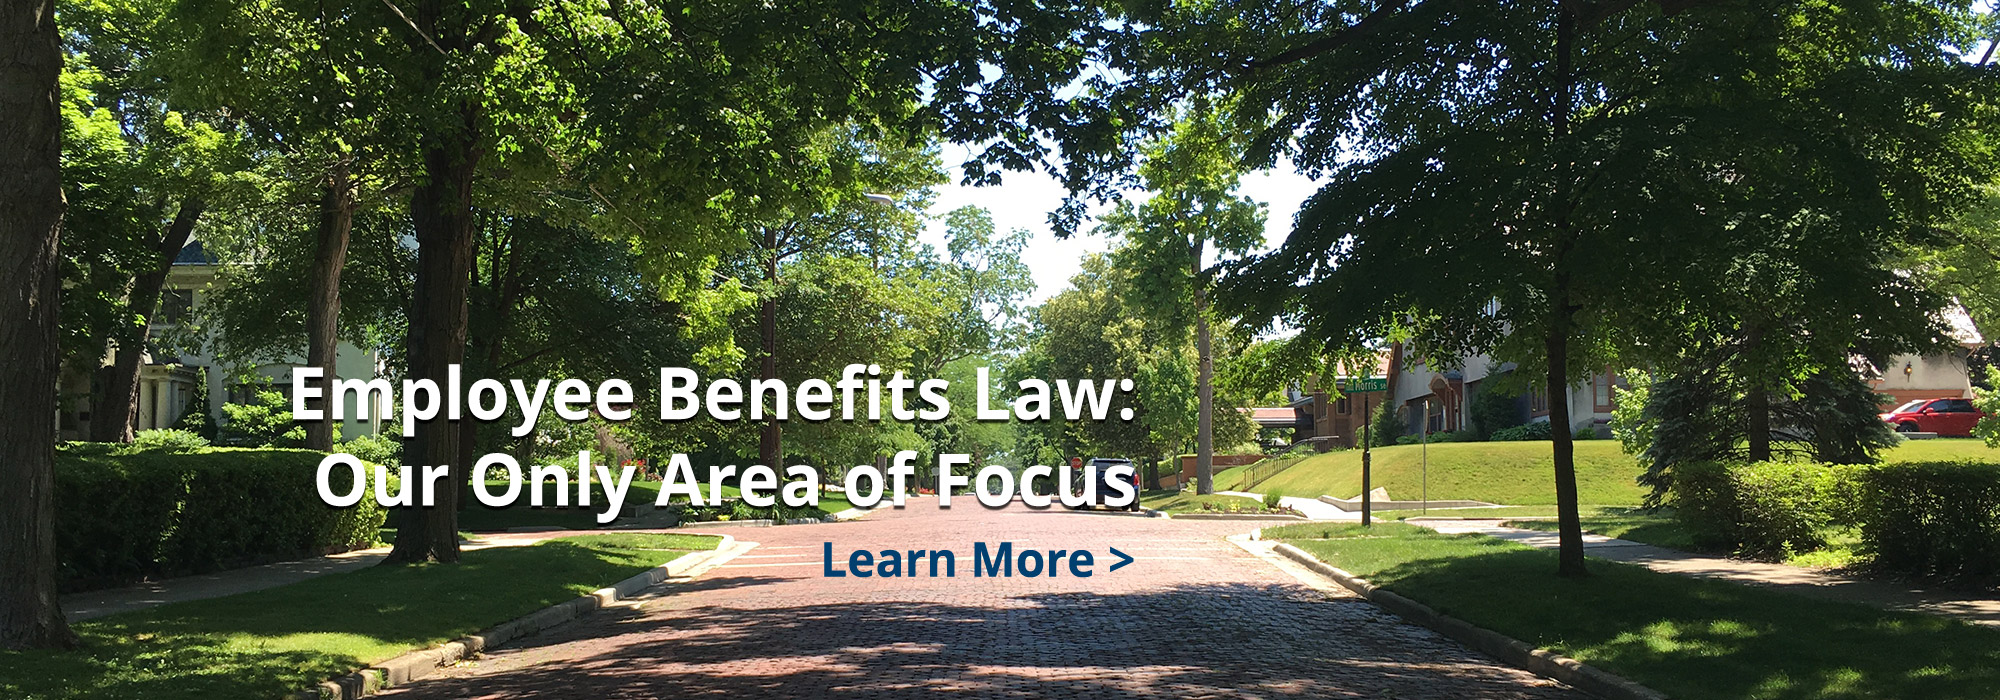 Employee benefits law: Our only area of focus